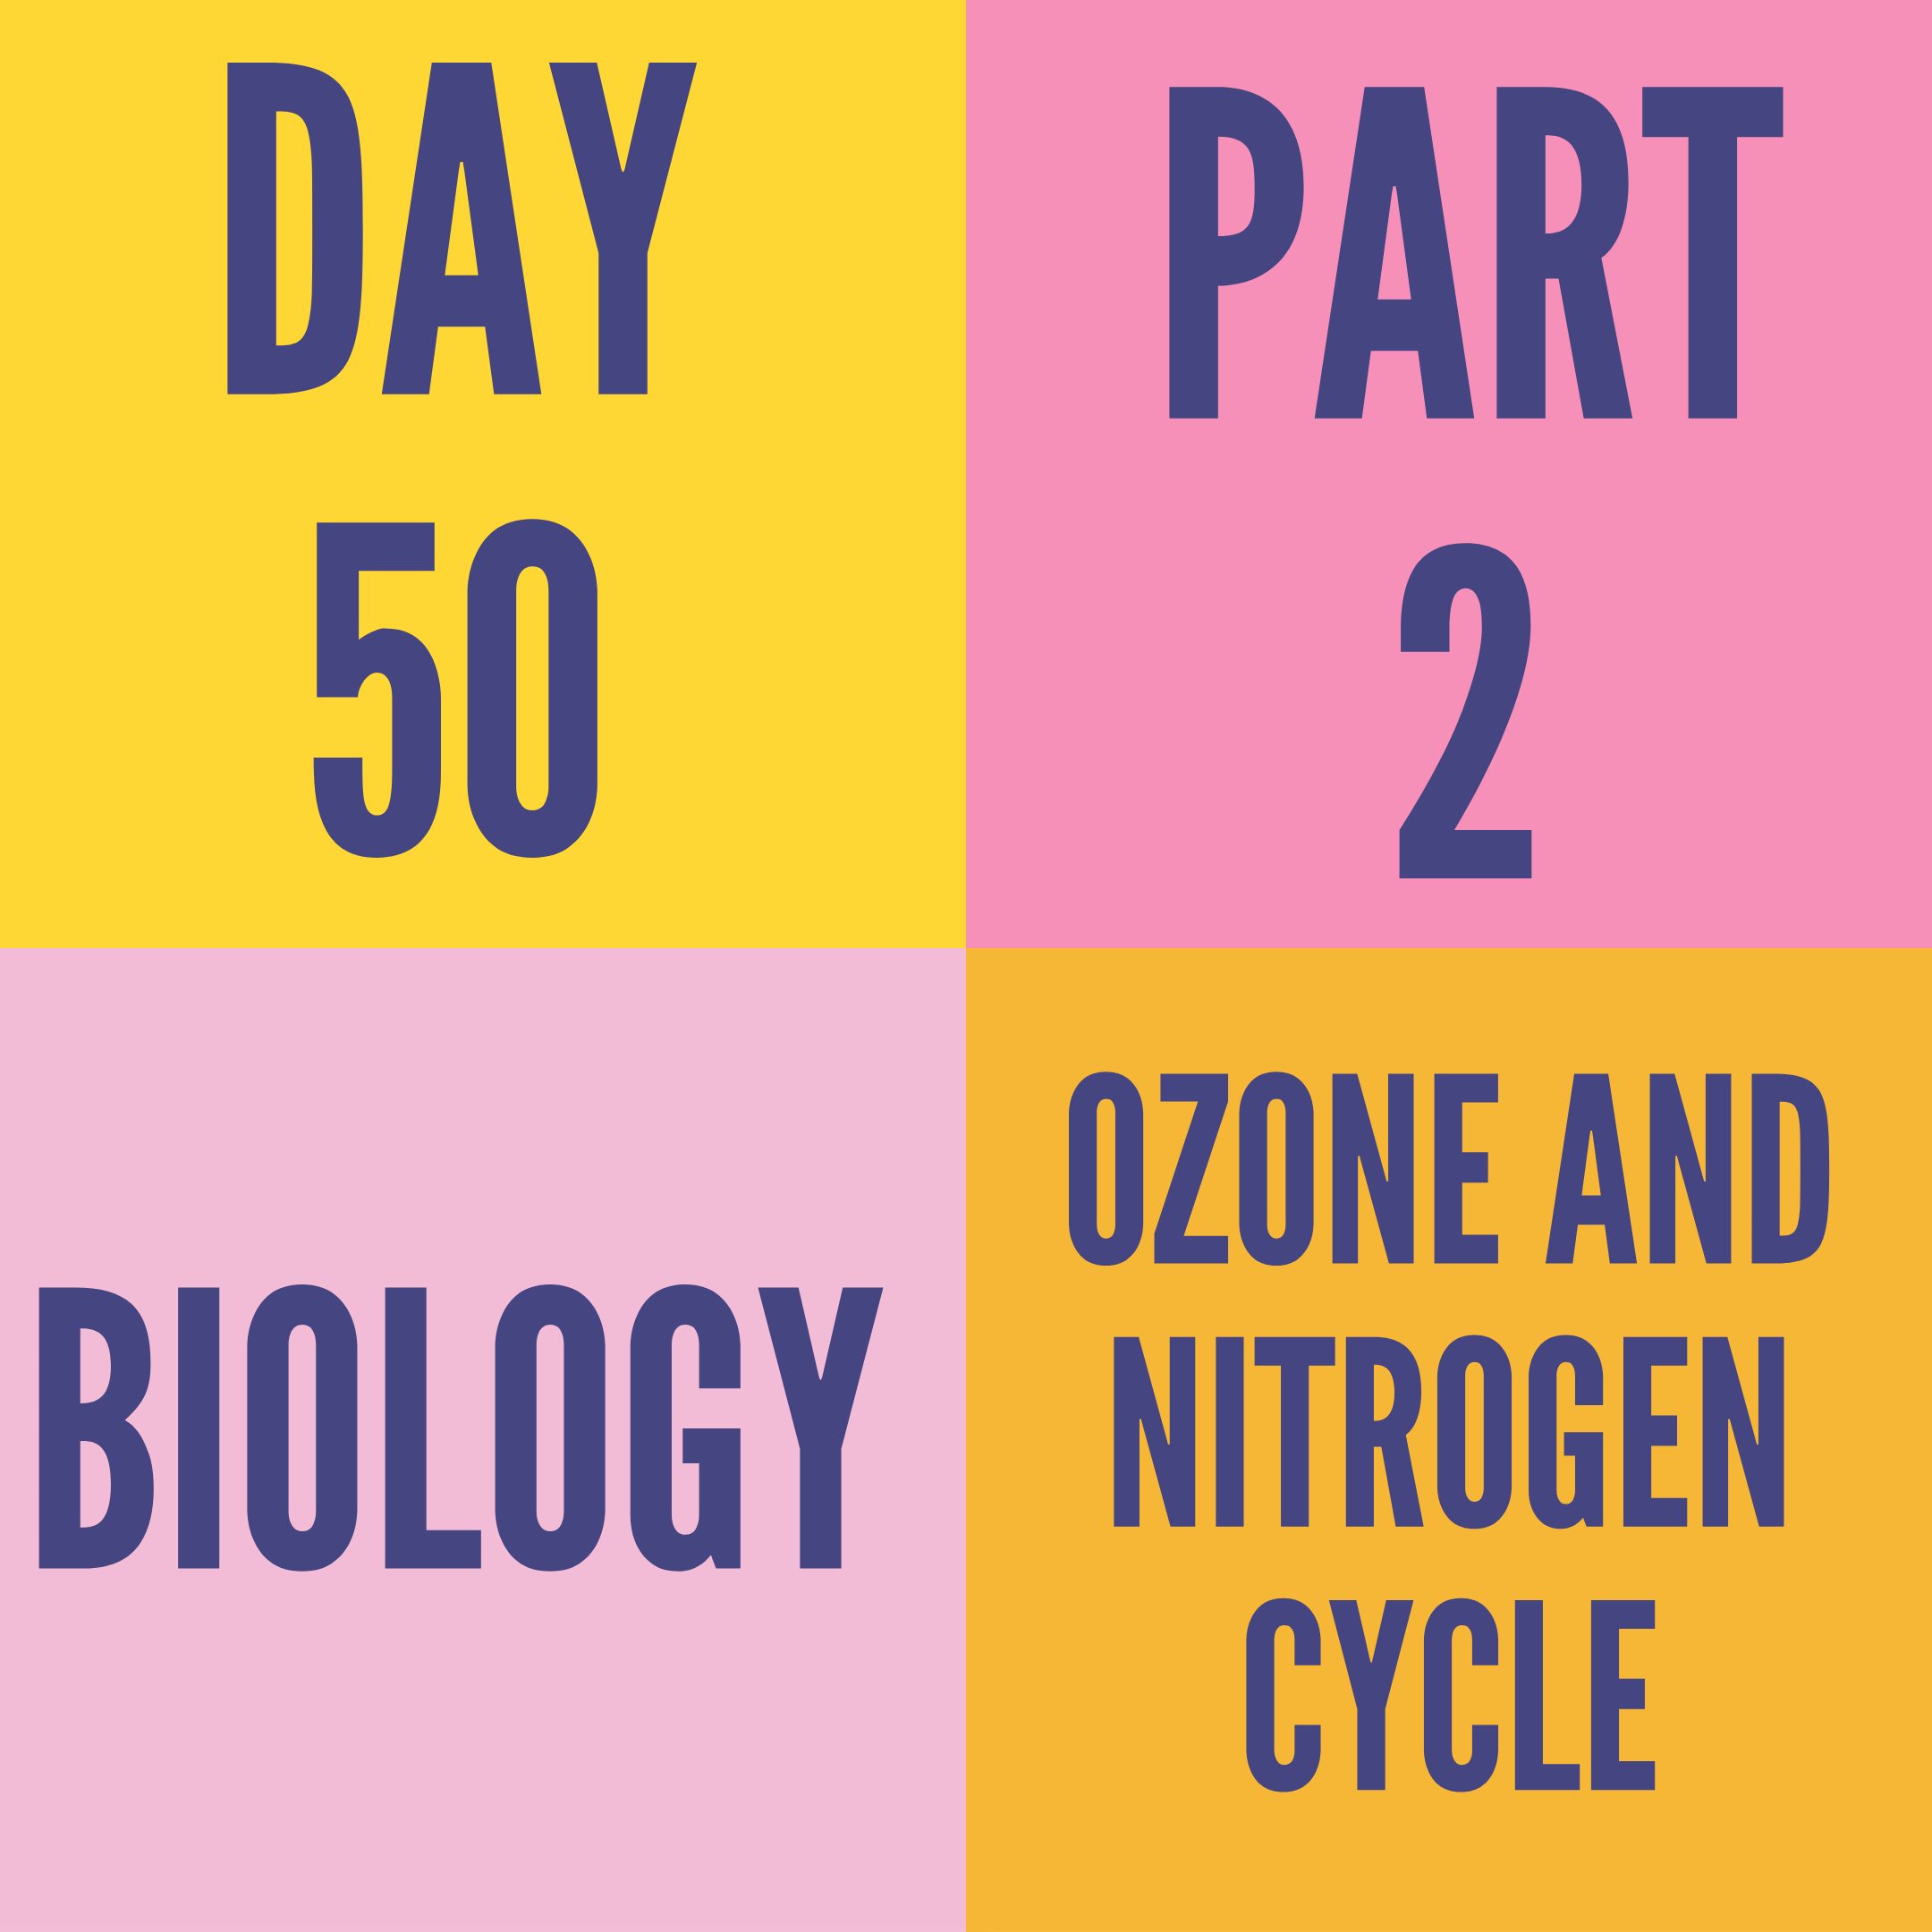 DAY-50 PART-2 OZONE AND NITROGEN CYCLE